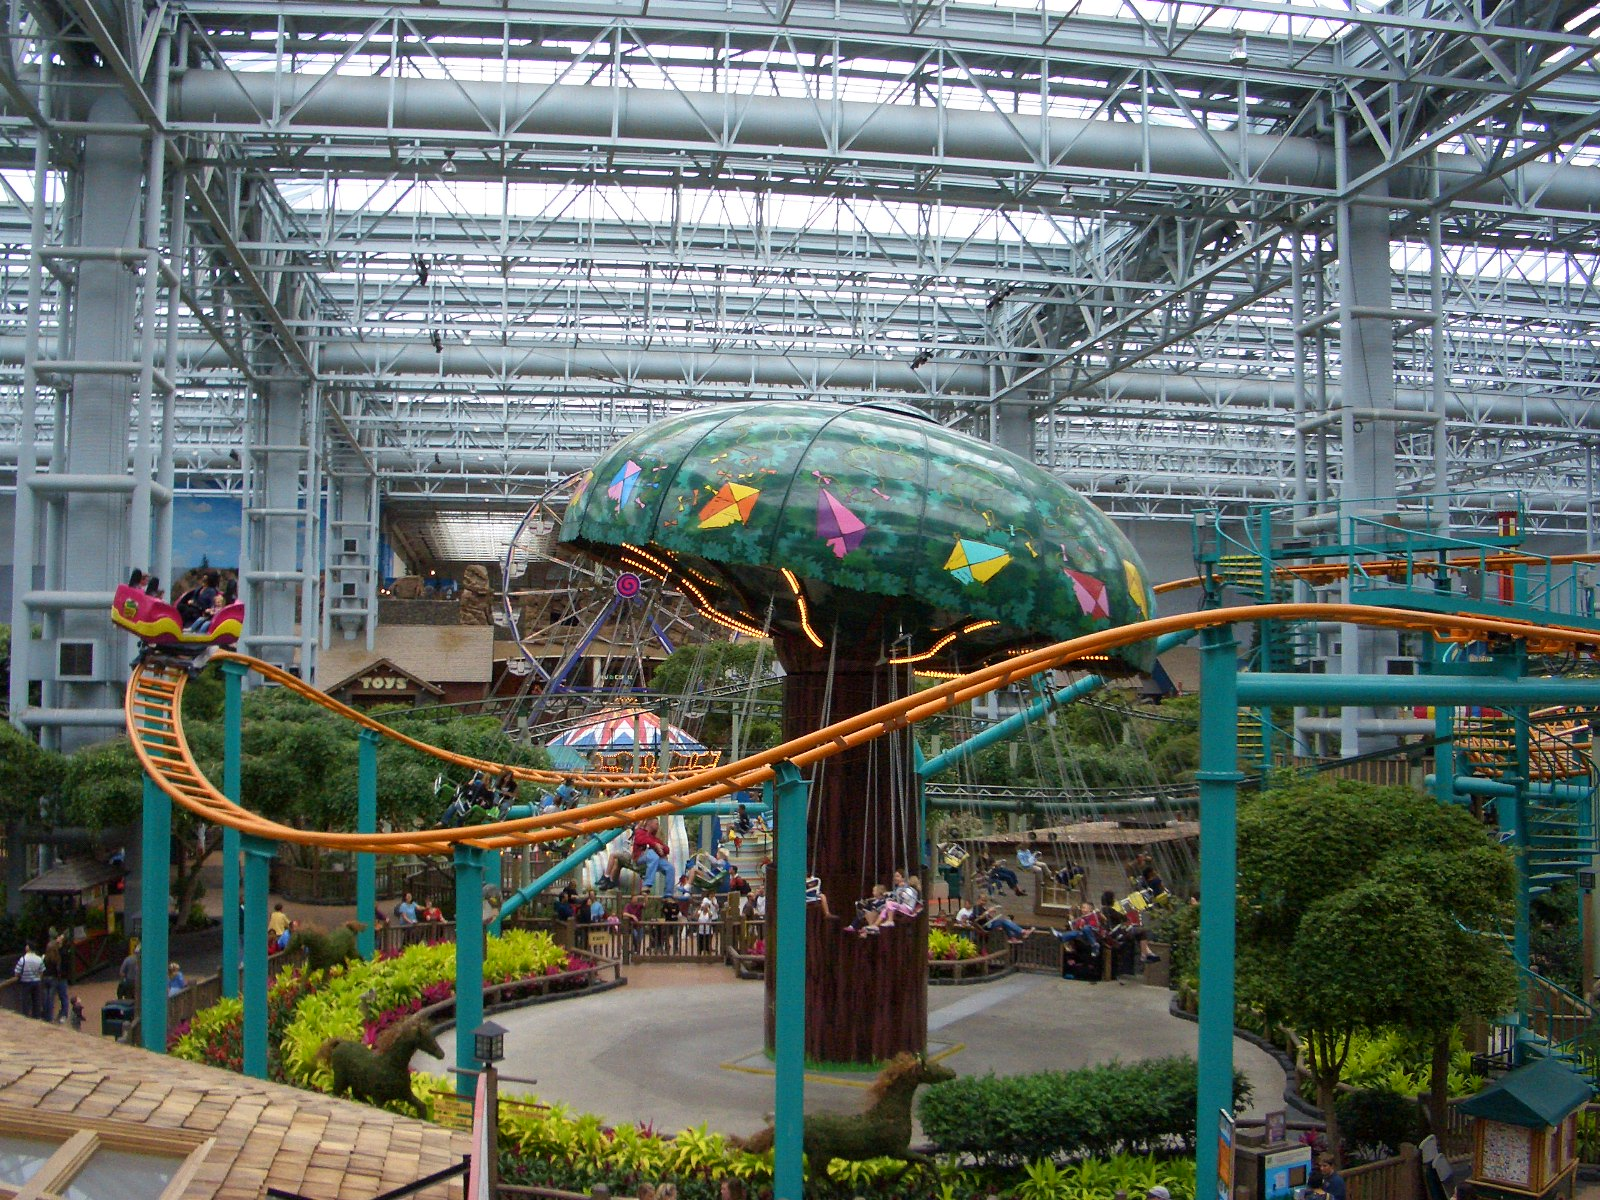 Mall of America の Camp Snoopy / キャンプ・スヌーピー